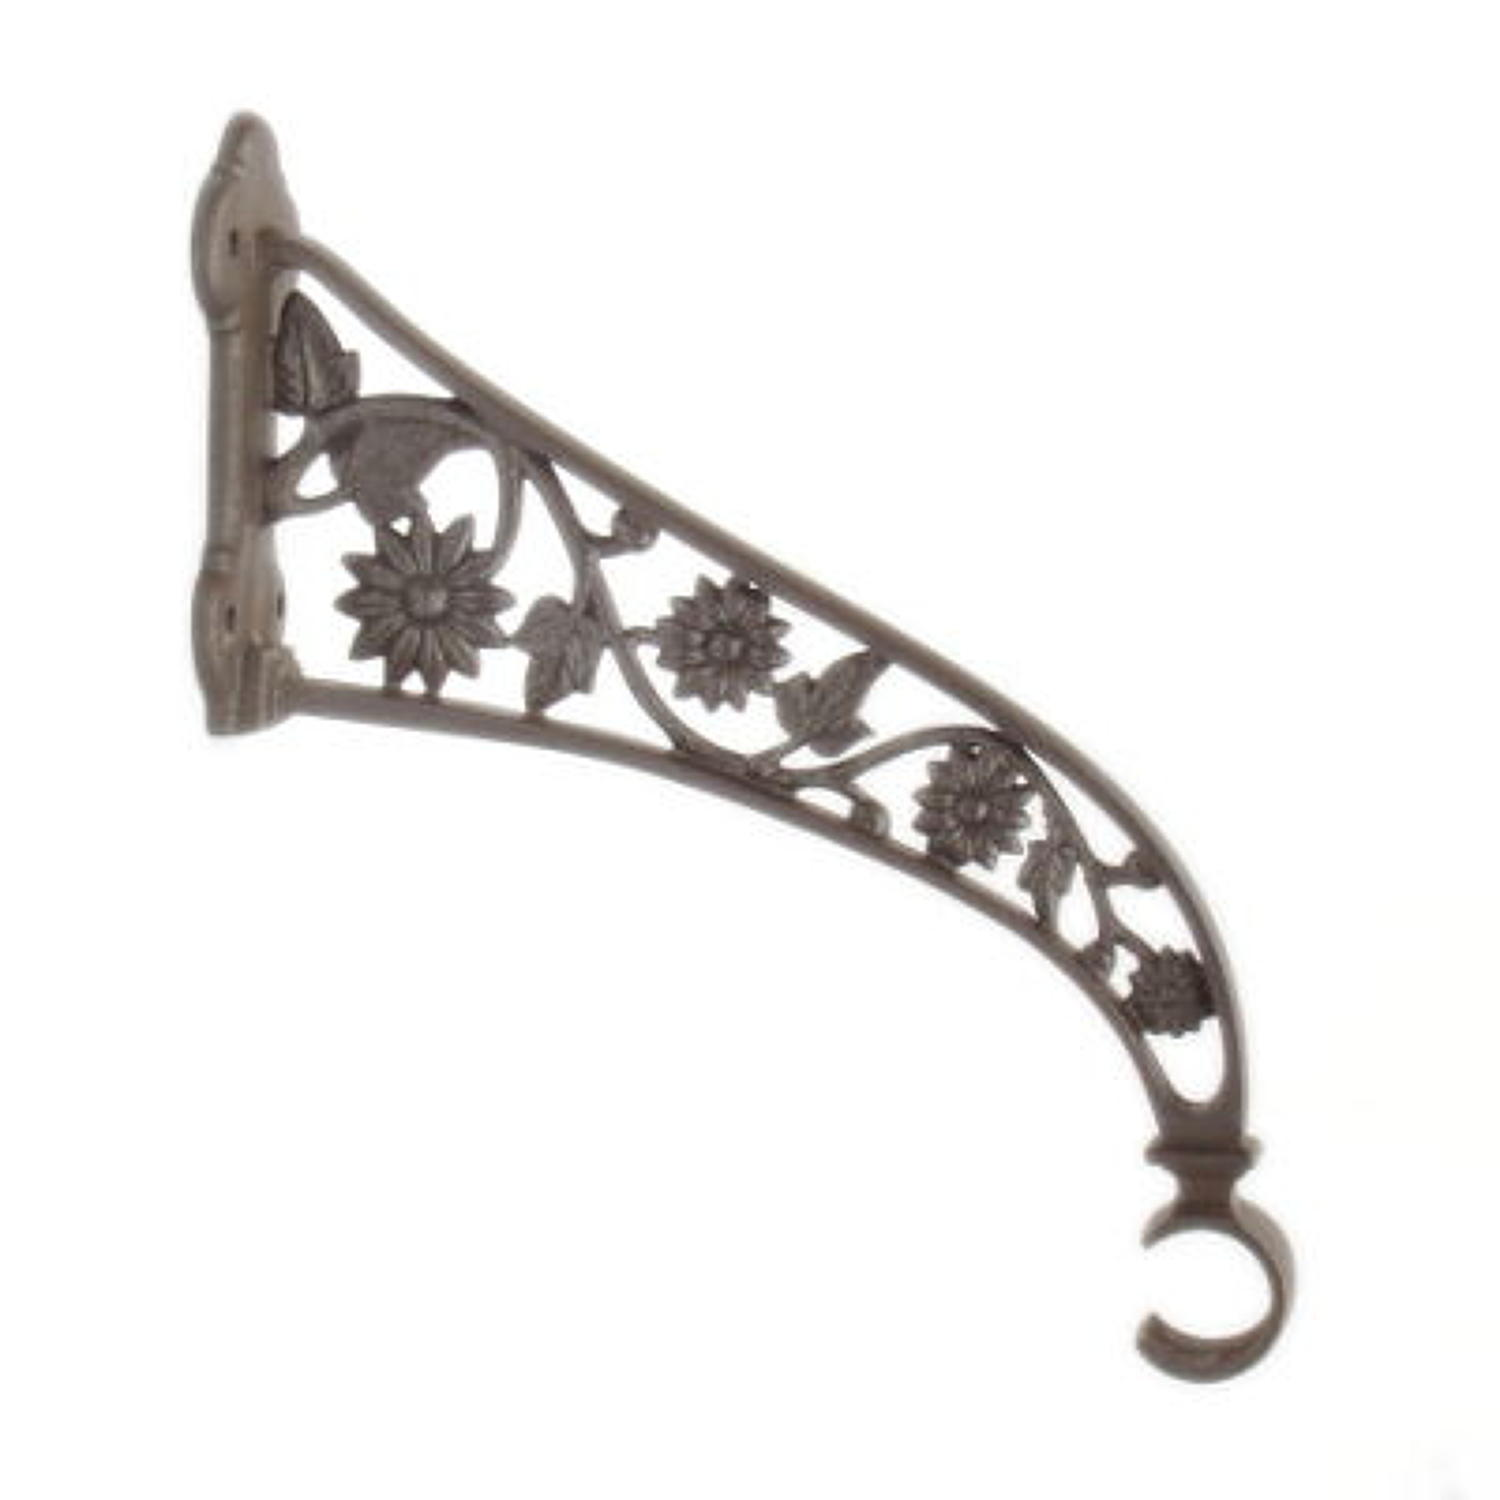 Cast Iron Railway Bracket